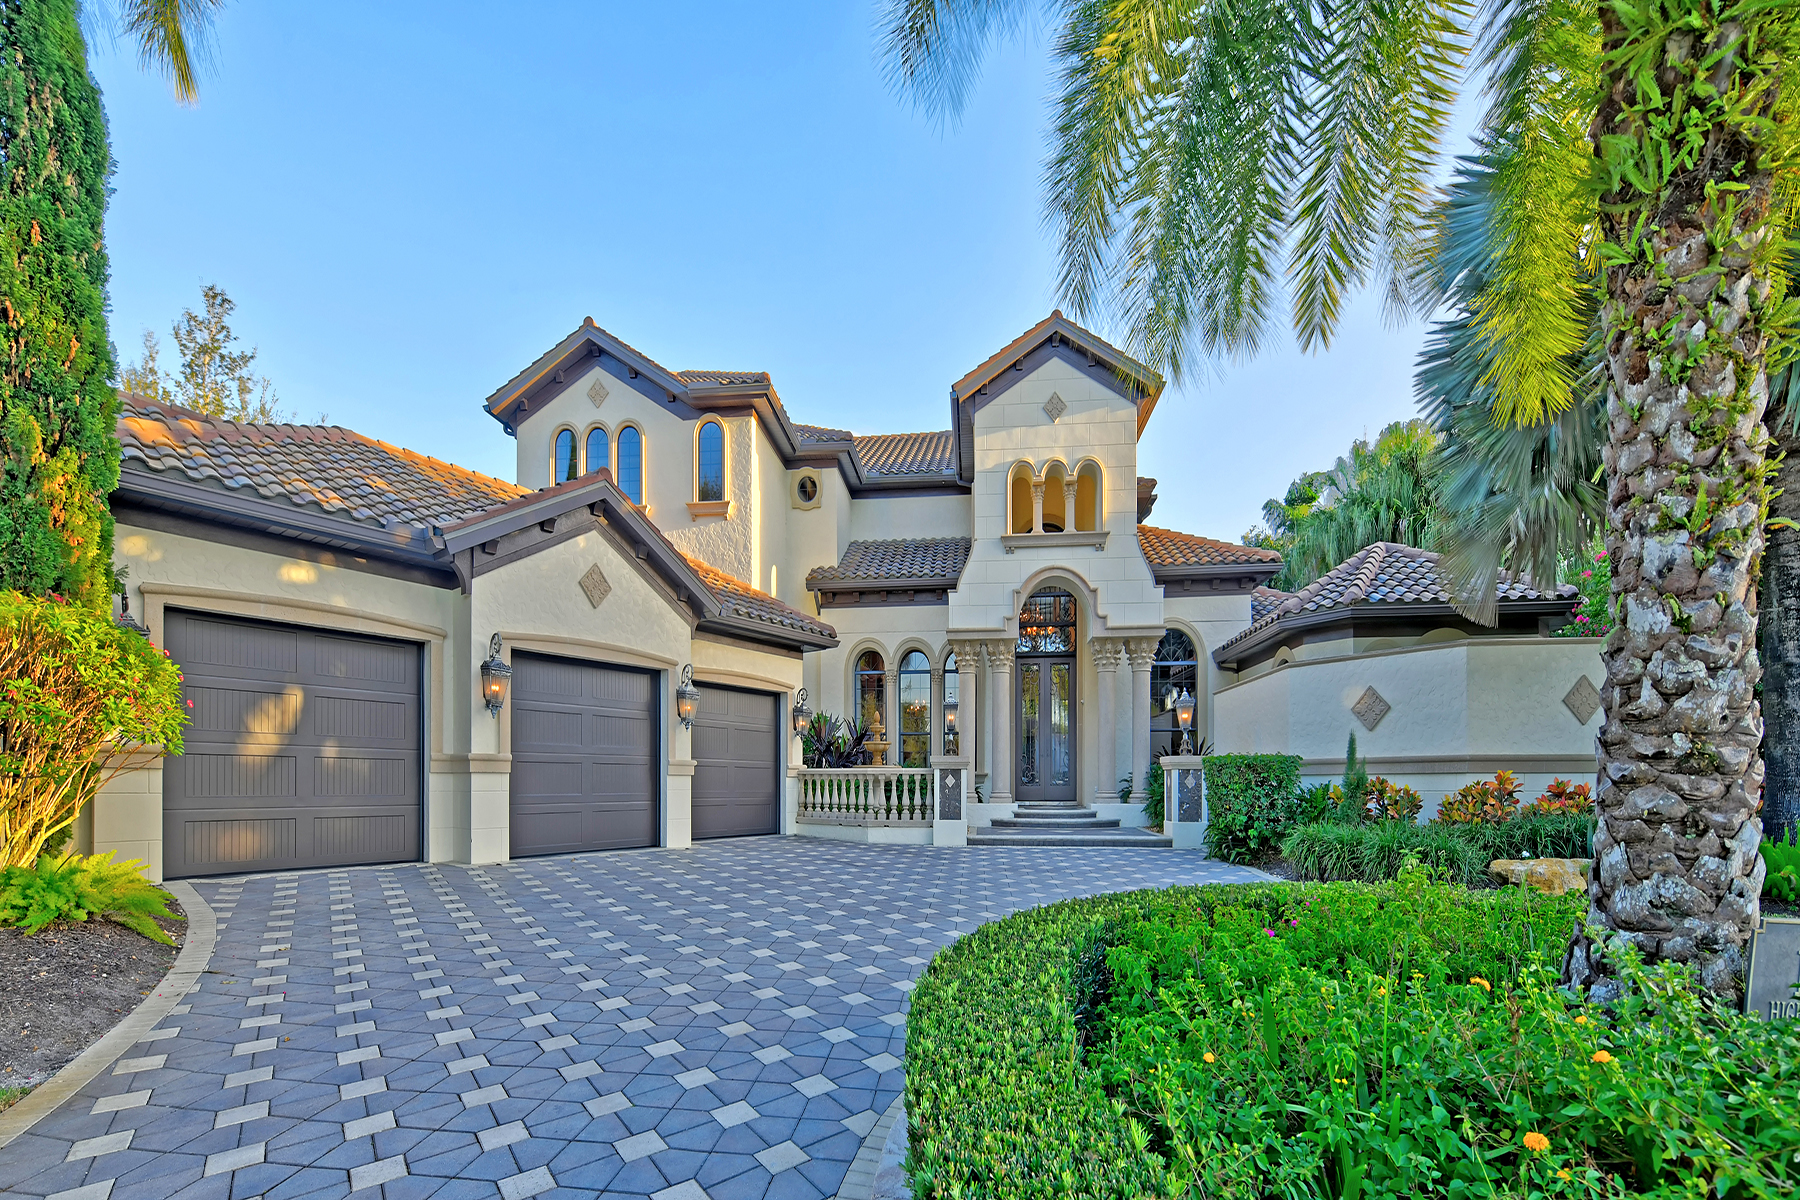 Single Family Homes for Sale at LAKEWOOD RANCH COUNTRY CLUB 12539 Highfield Cir Lakewood Ranch, Florida 34202 United States